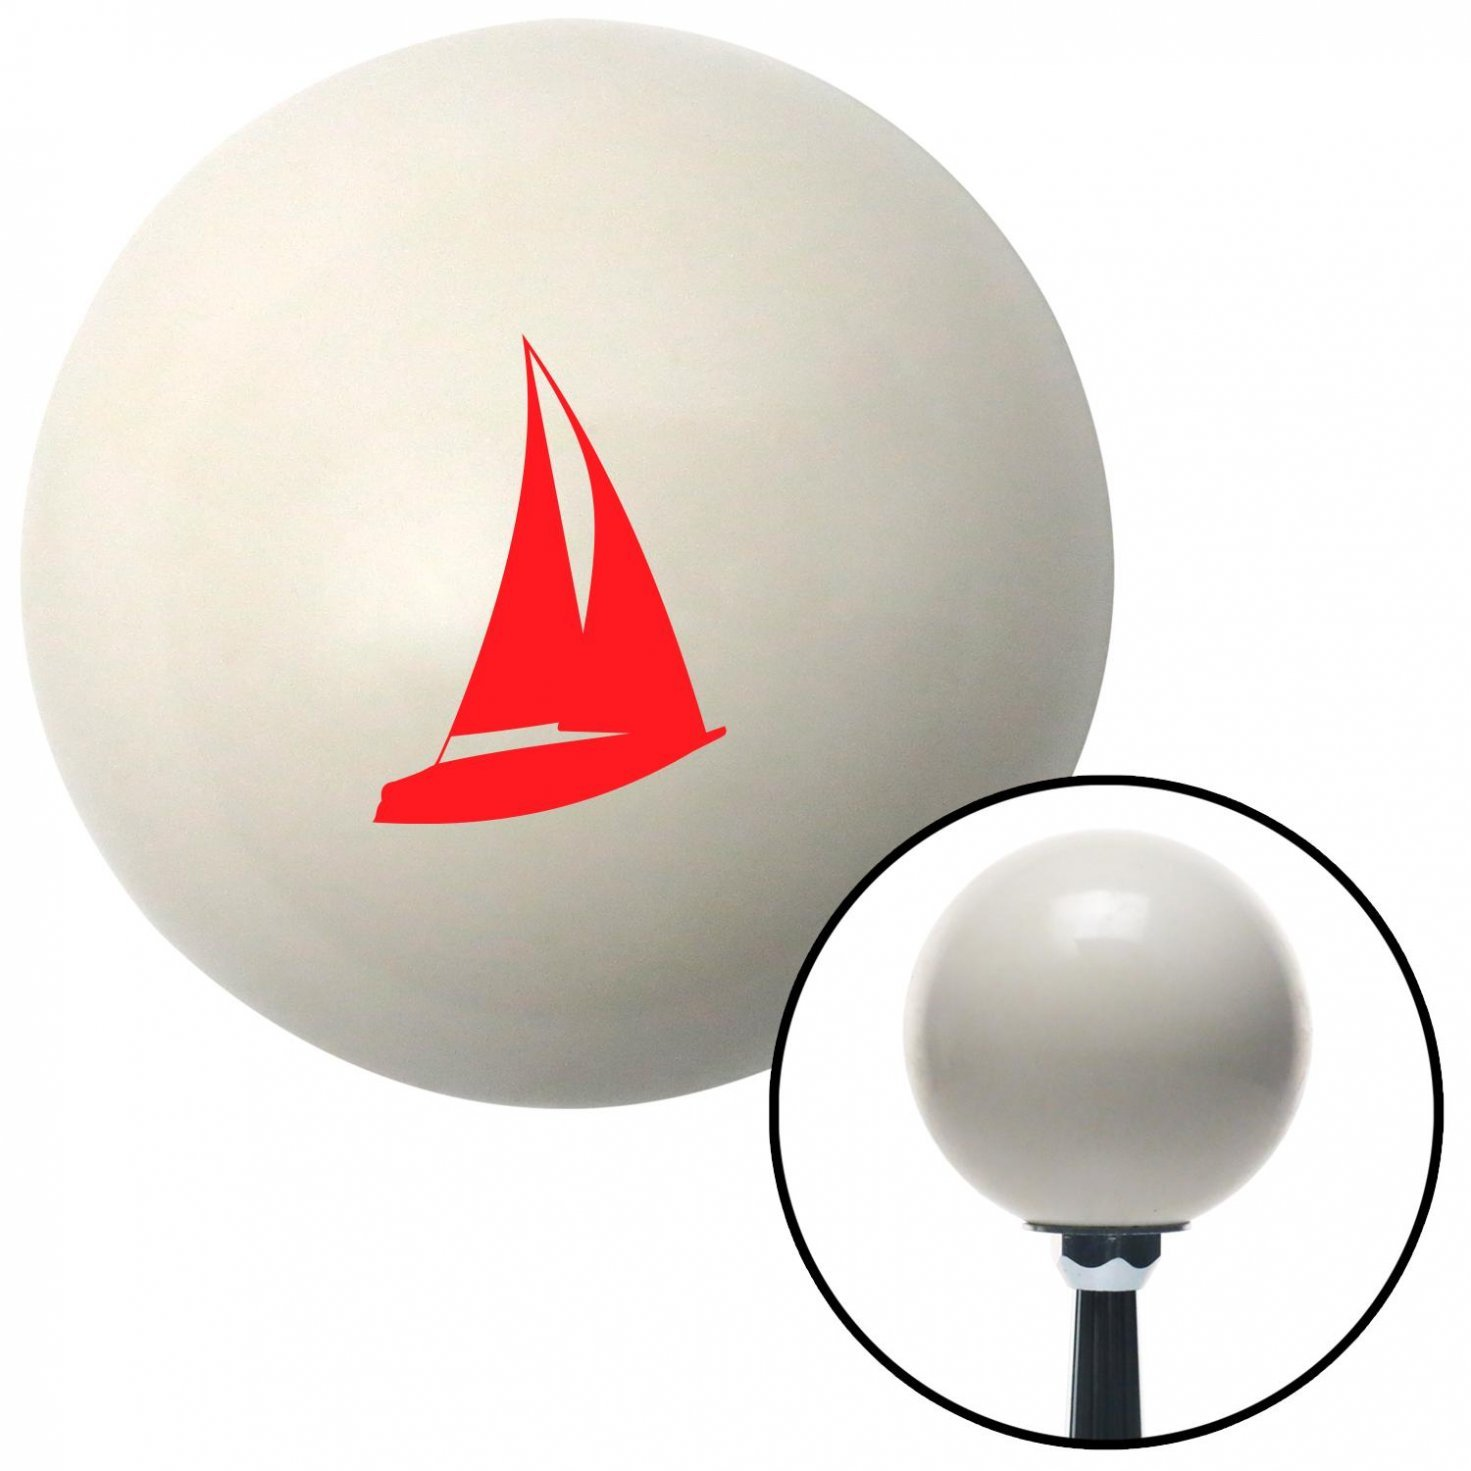 American Shifter 35457 Ivory Shift Knob with 16mm x 1.5 Insert Red Sailboat